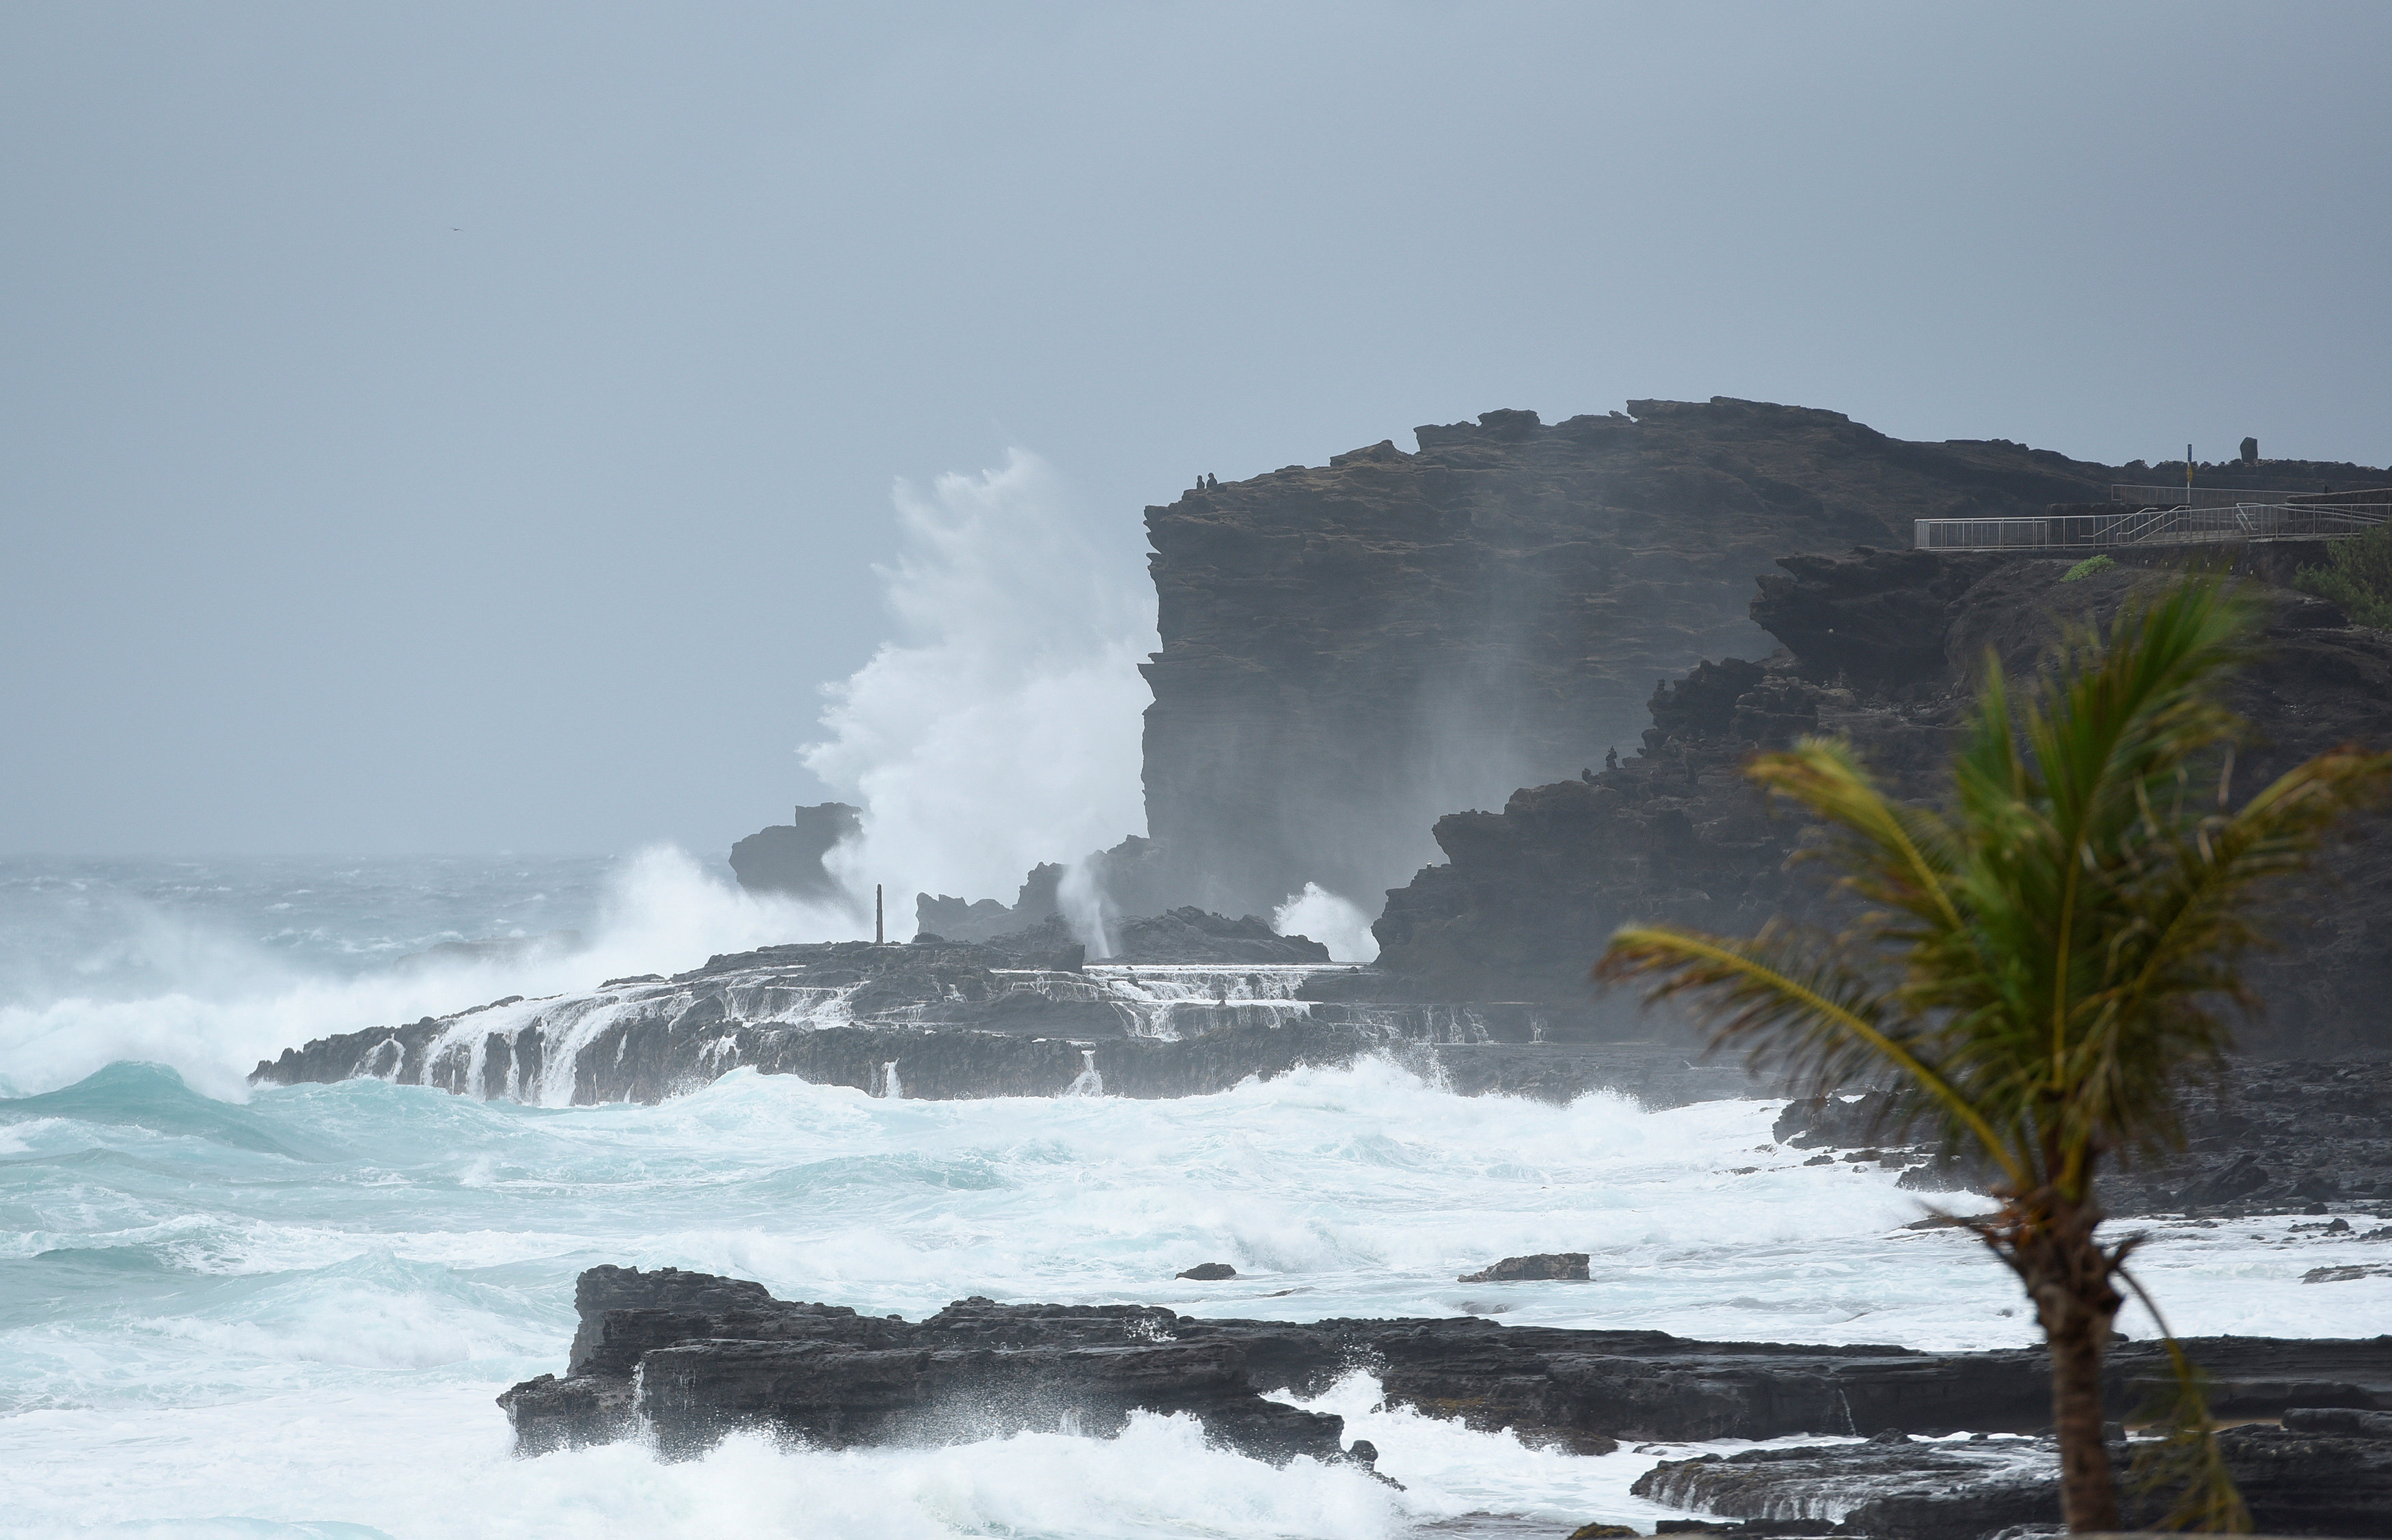 FILE PHOTO: Large waves crash against the shoreline on the east side of Oahu as Hurricane Lane approaches Honolulu, Hawaii, U.S. August 24, 2018. REUTERS/Hugh Gentry